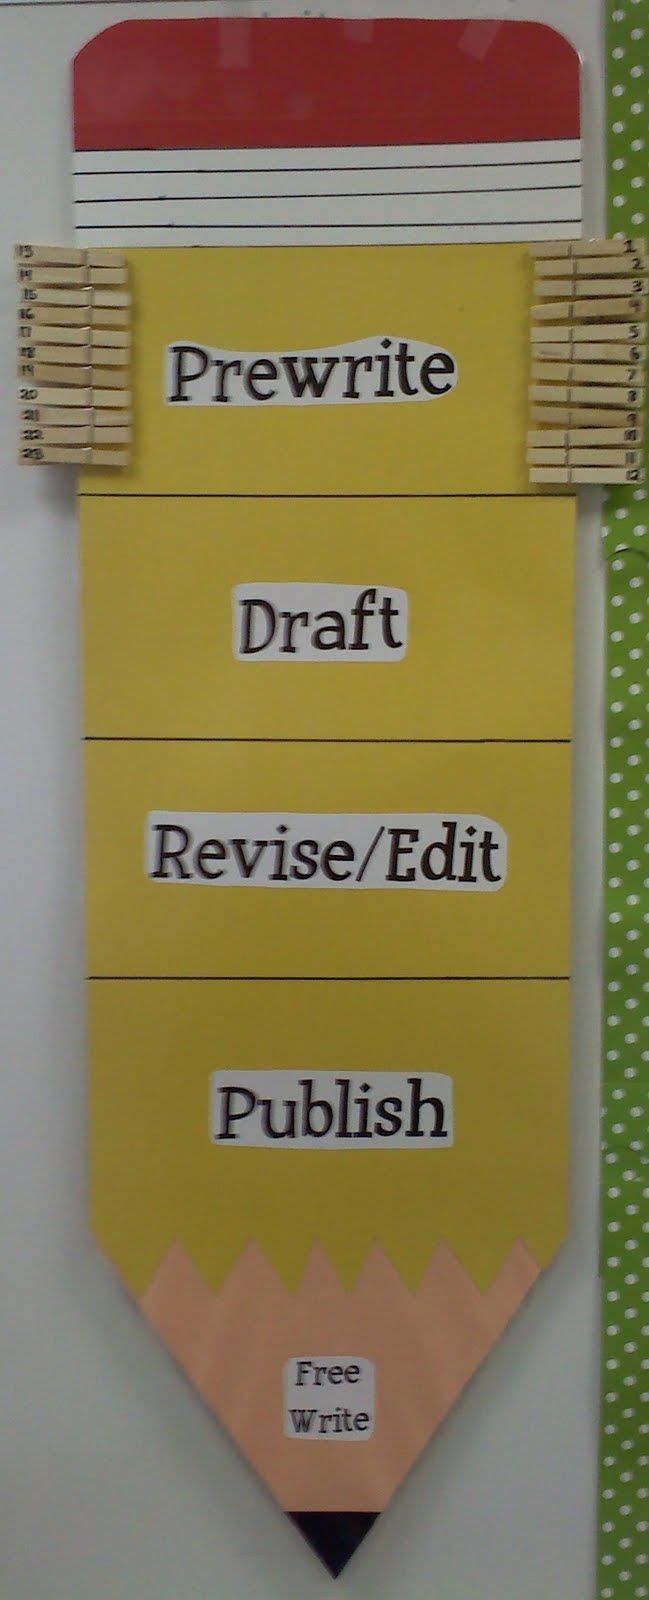 I want to put one of these in my room, but with a folder behind each title.  In the folders I would put various blank outlines, special drafting paper, peer editing sheets, editing mark cards, etc.